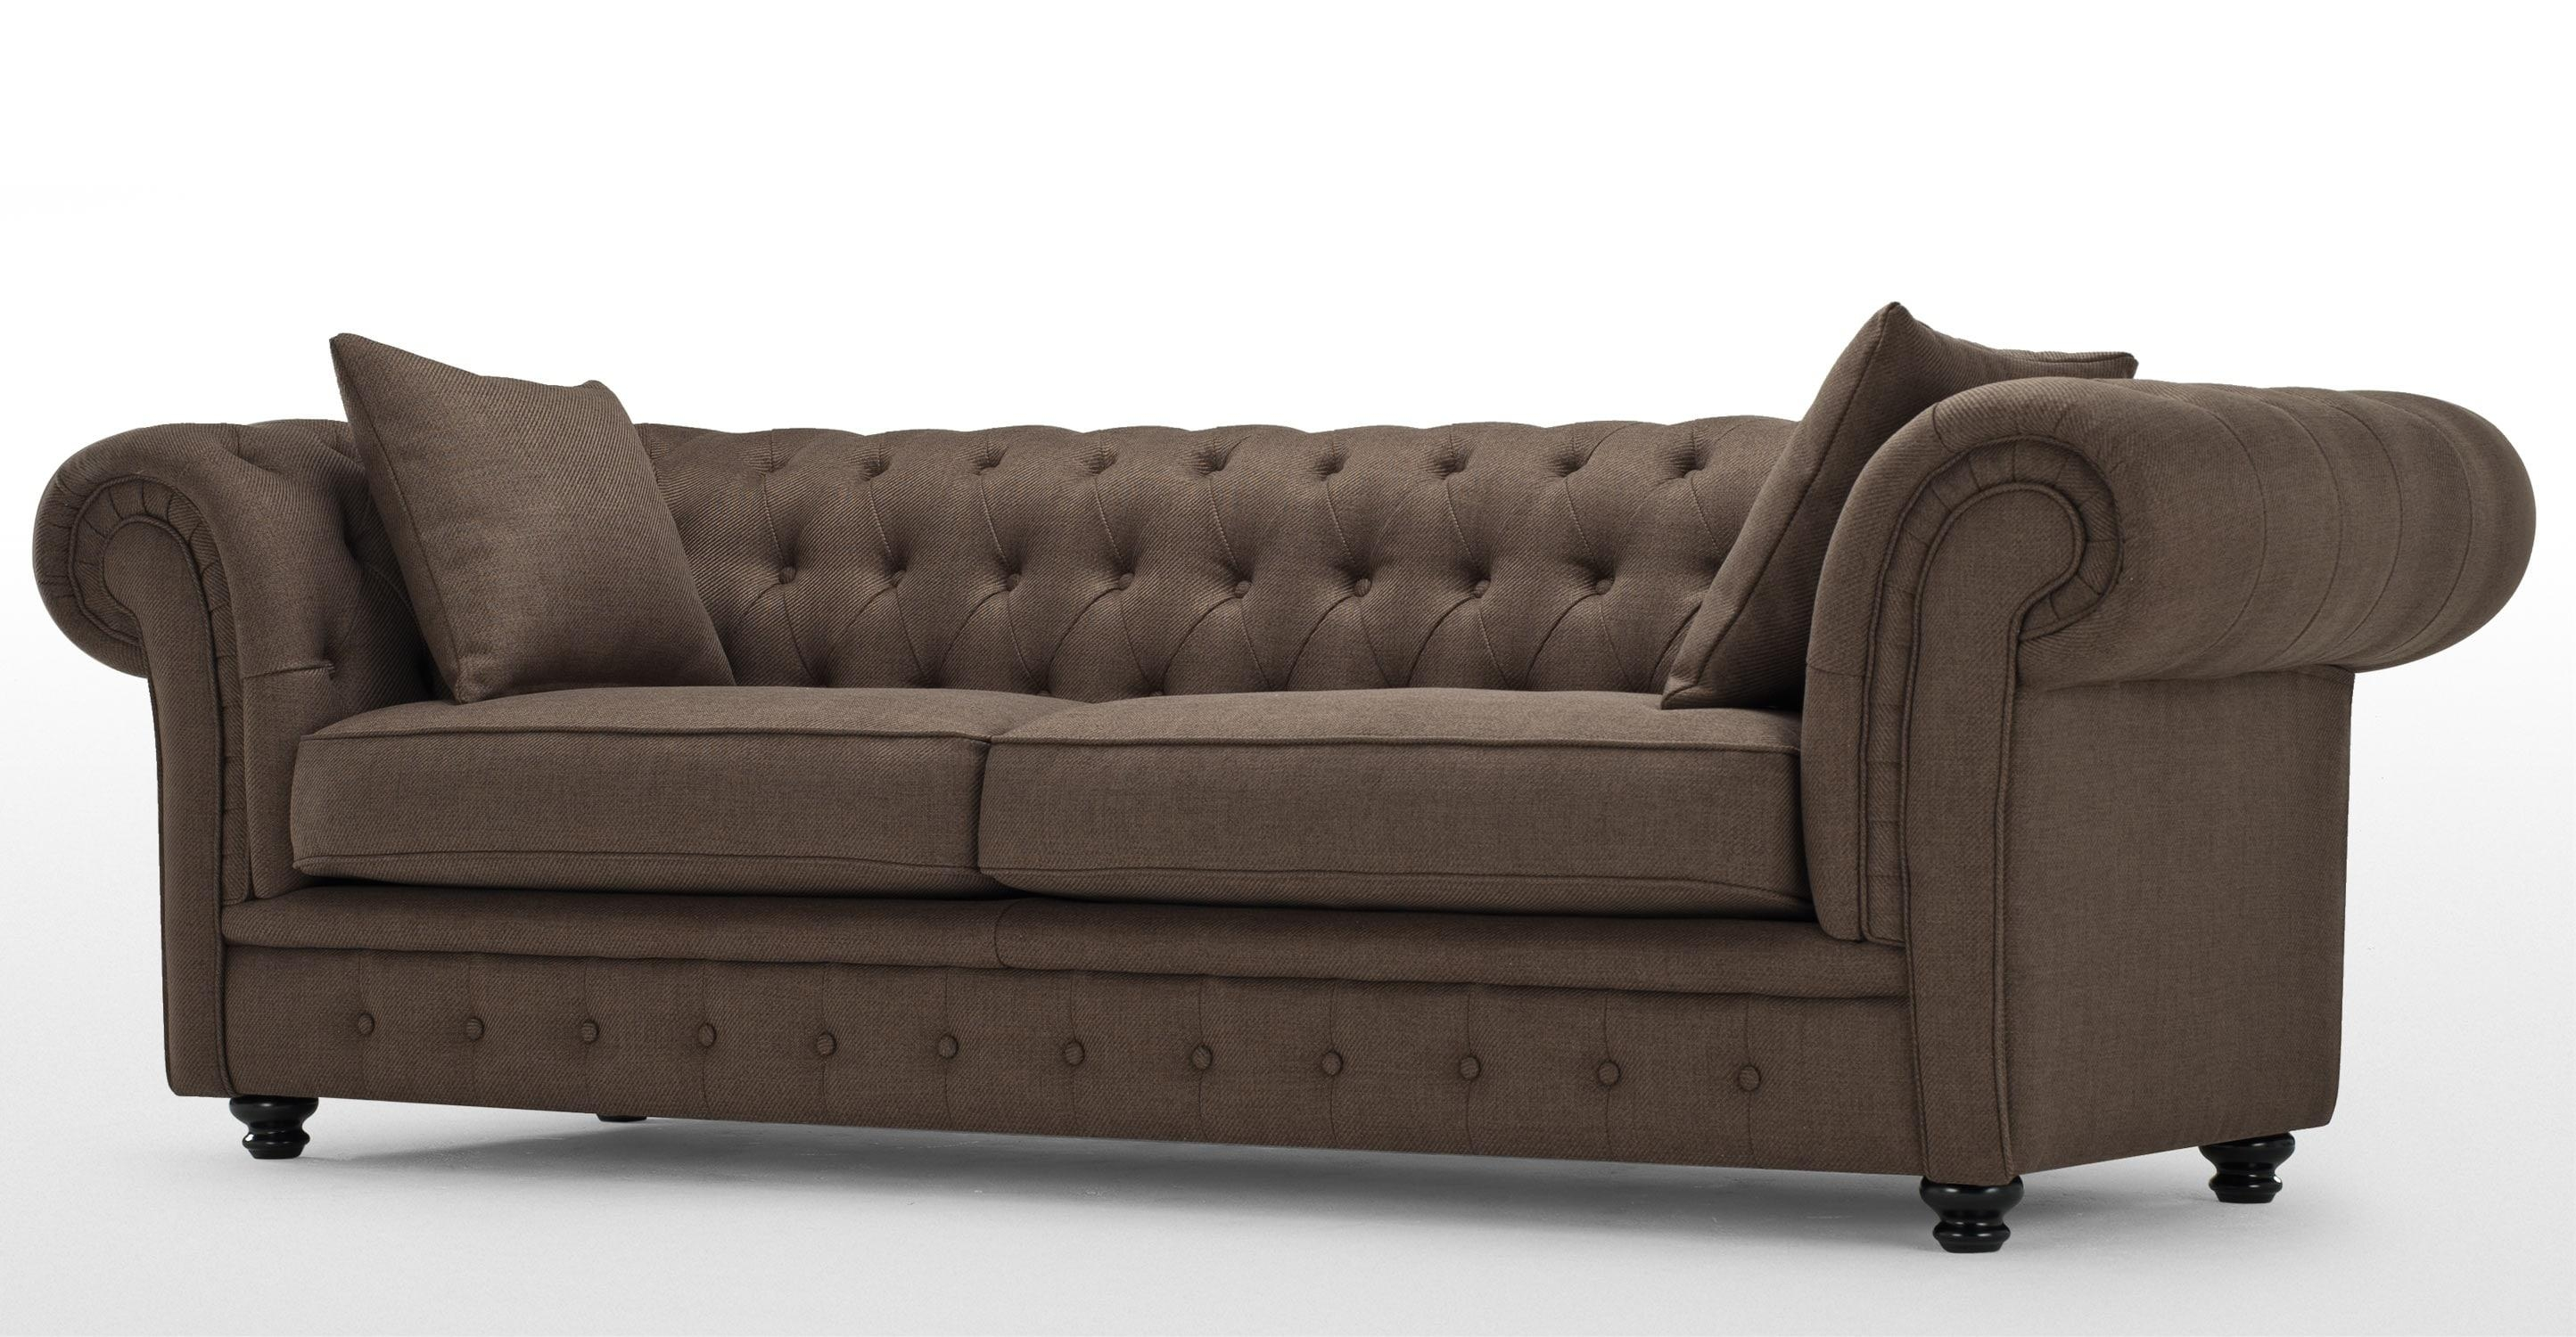 Branagh 3 Seater Brown Chesterfield Sofa | Made Regarding Chesterfield Sofas (View 9 of 20)